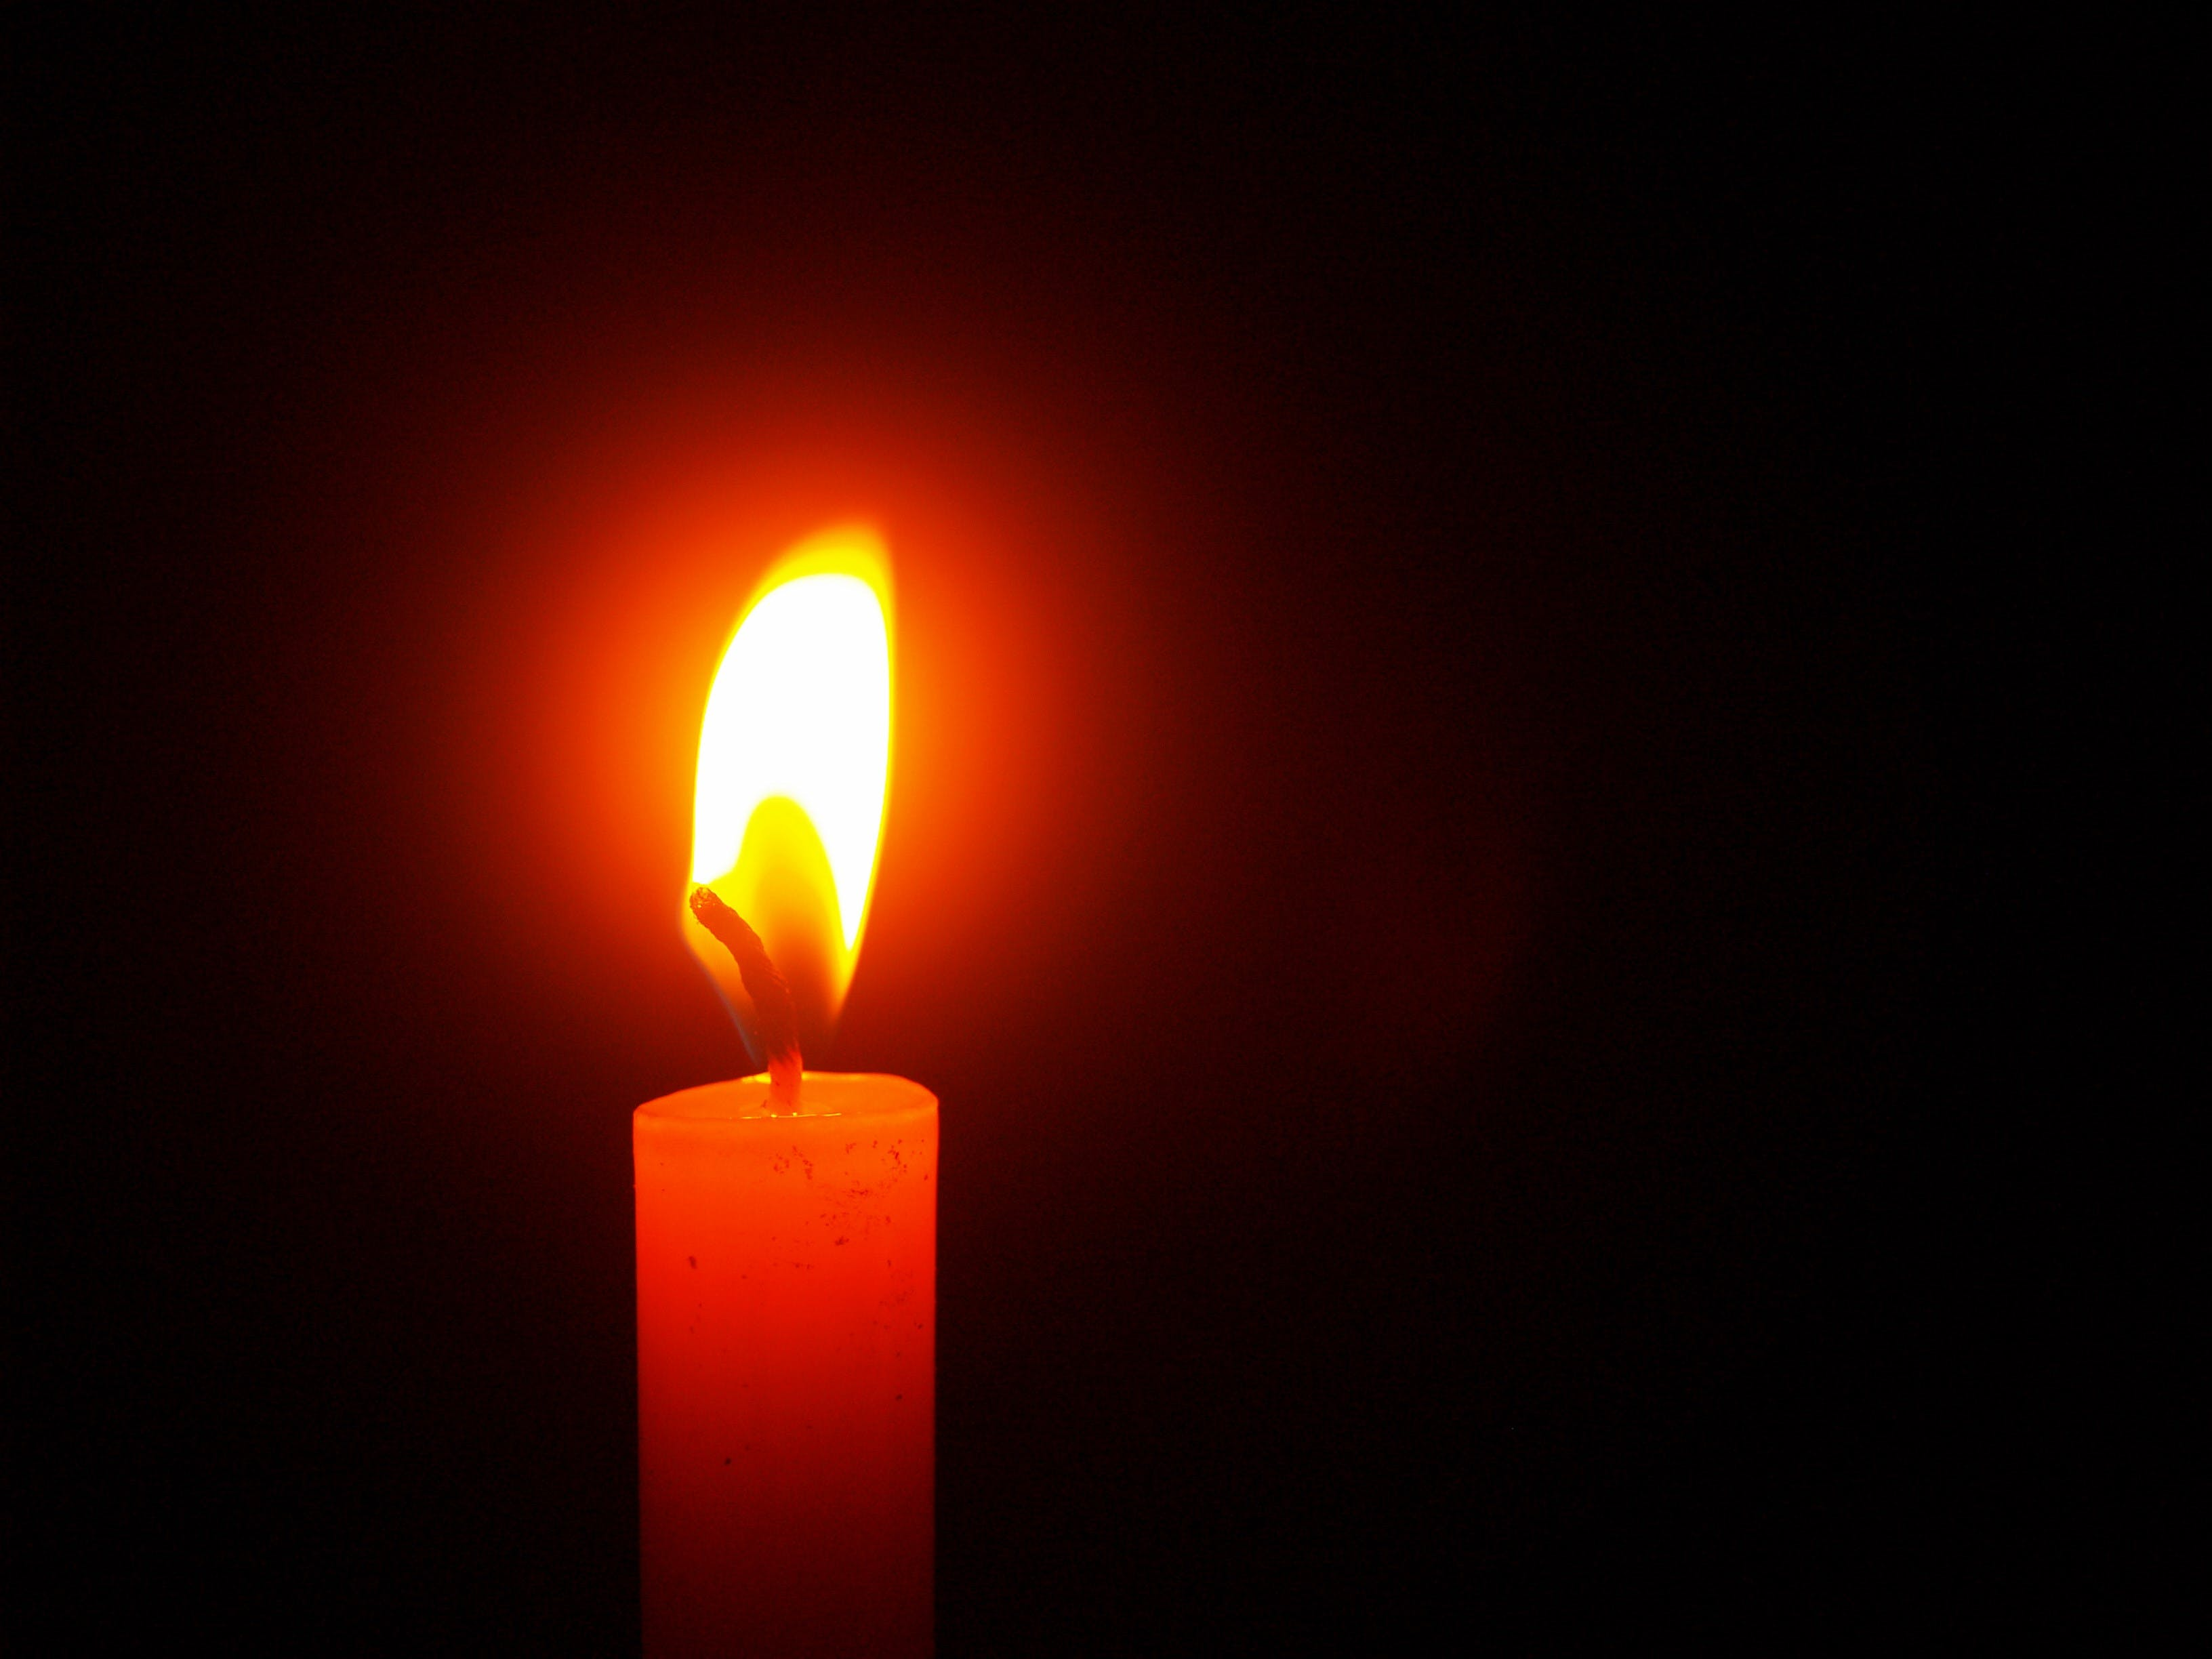 Red Lighted Candle